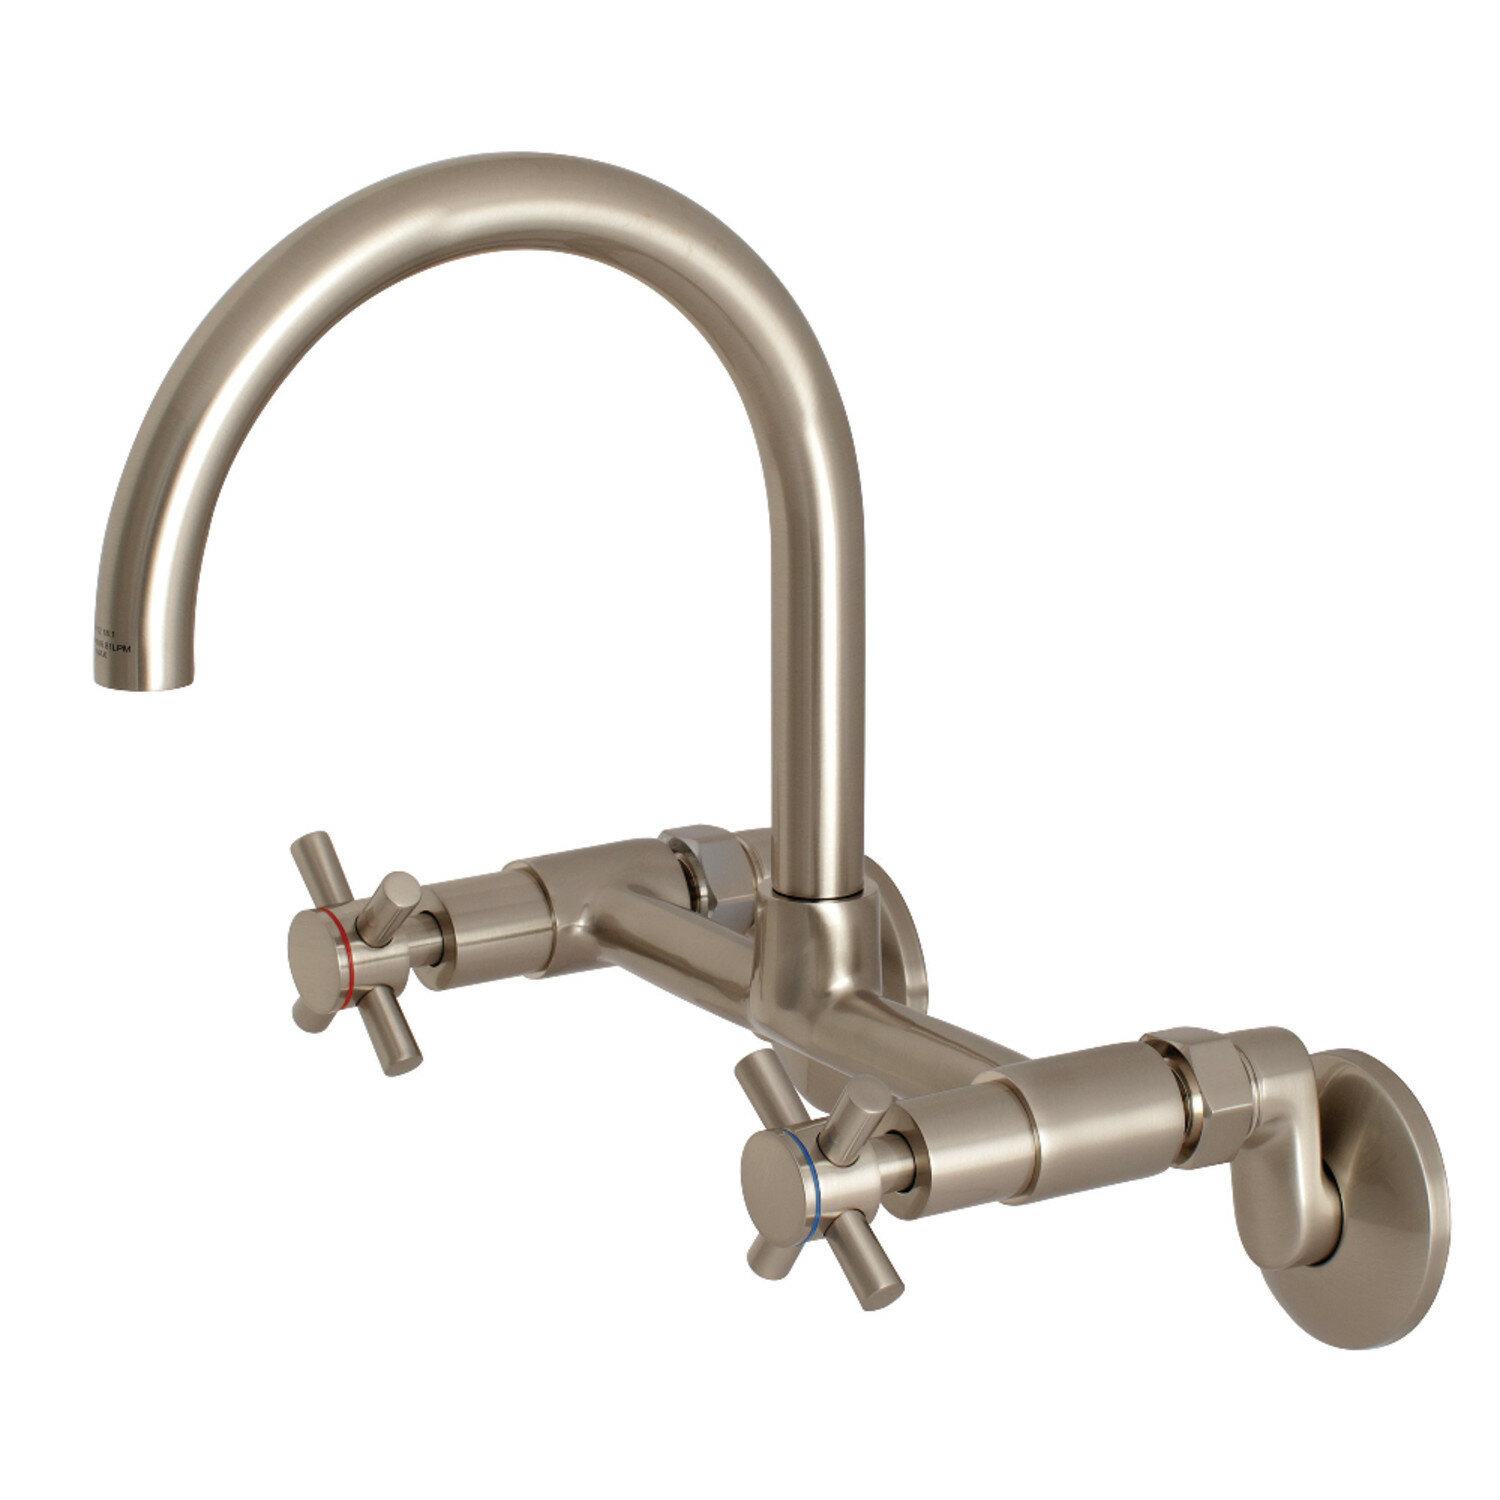 Kingston Brass Concord 9-Inch Adjustable Centre Wall Mount Kitchen Faucet,  Oil Rubbed Bronze